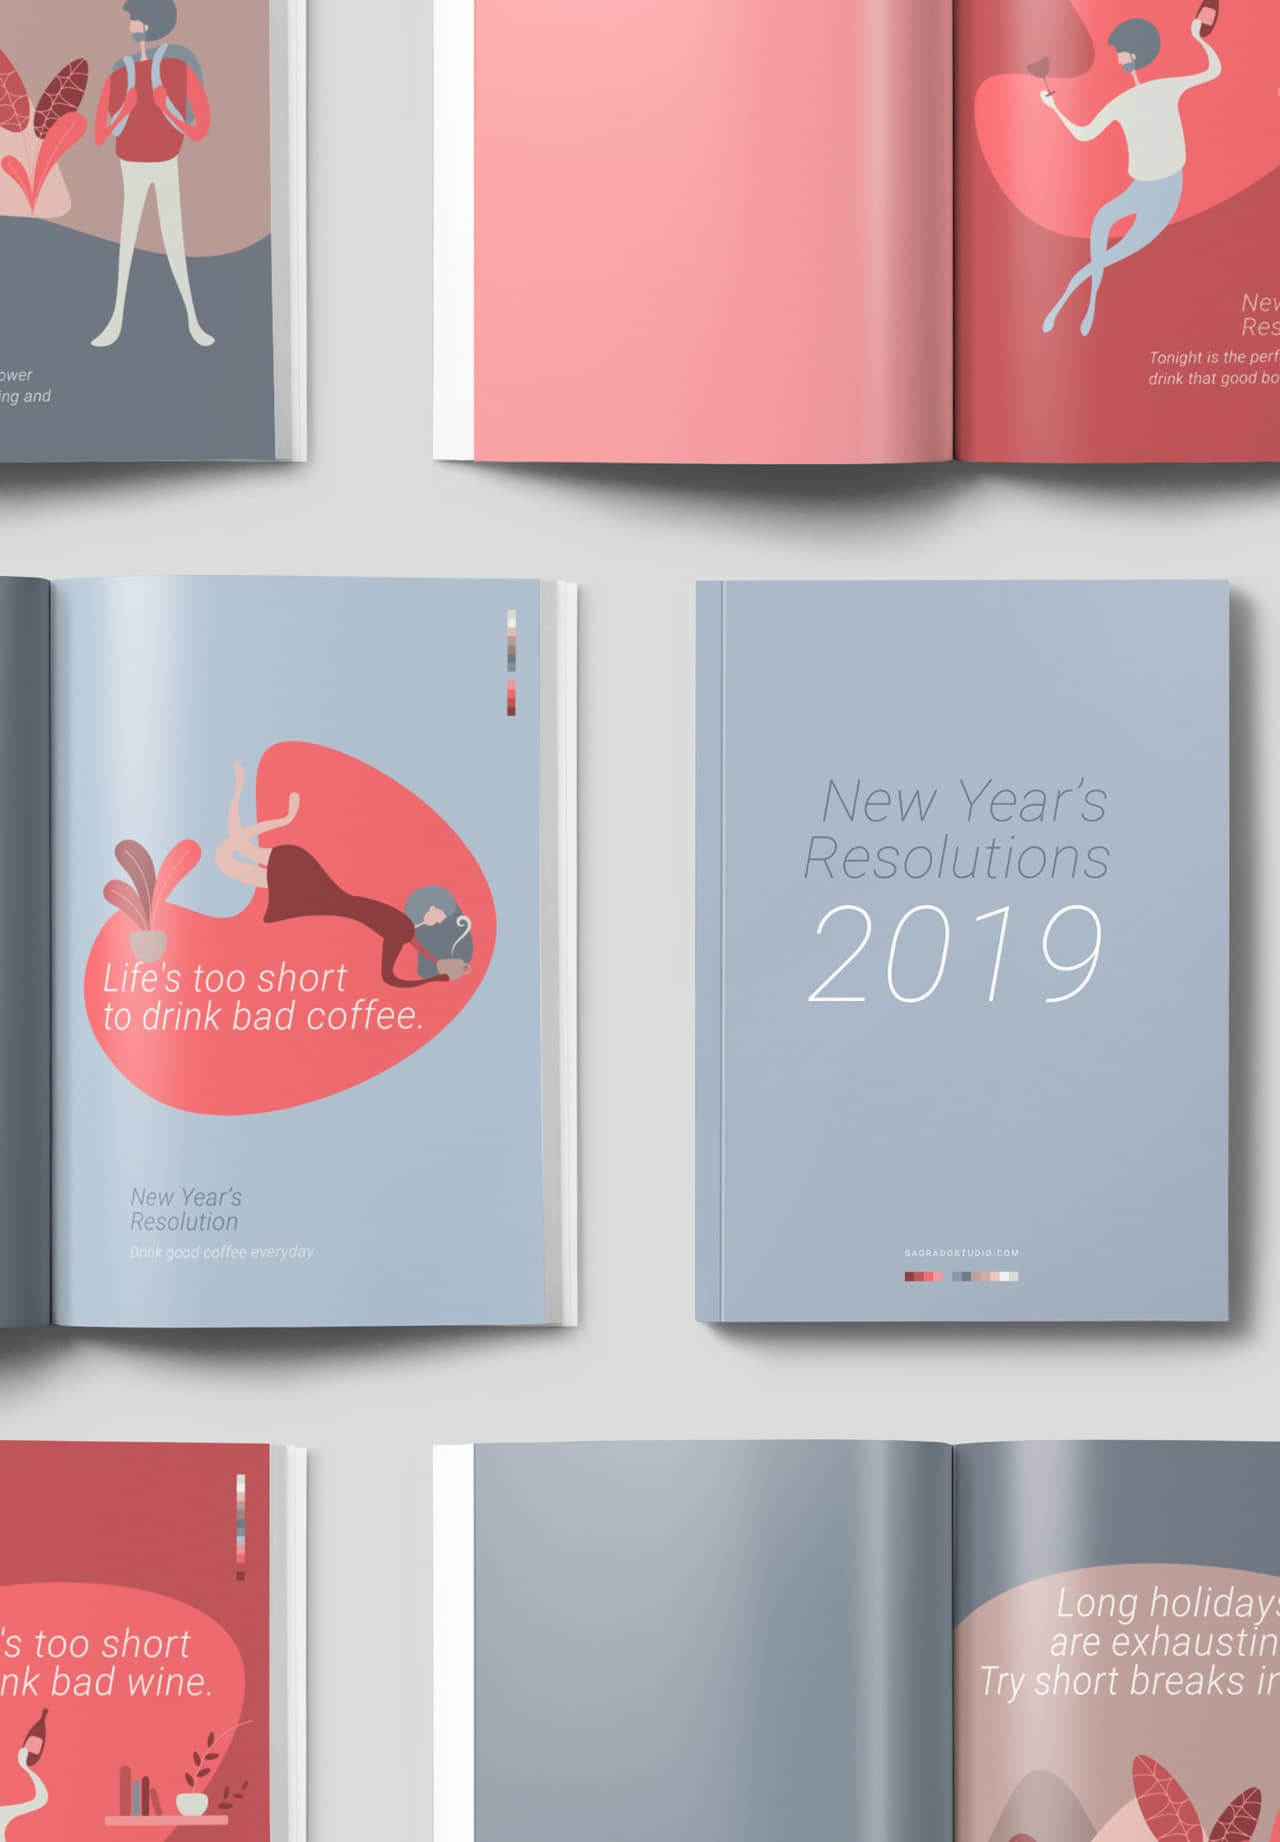 New Years Resolutions illustrations